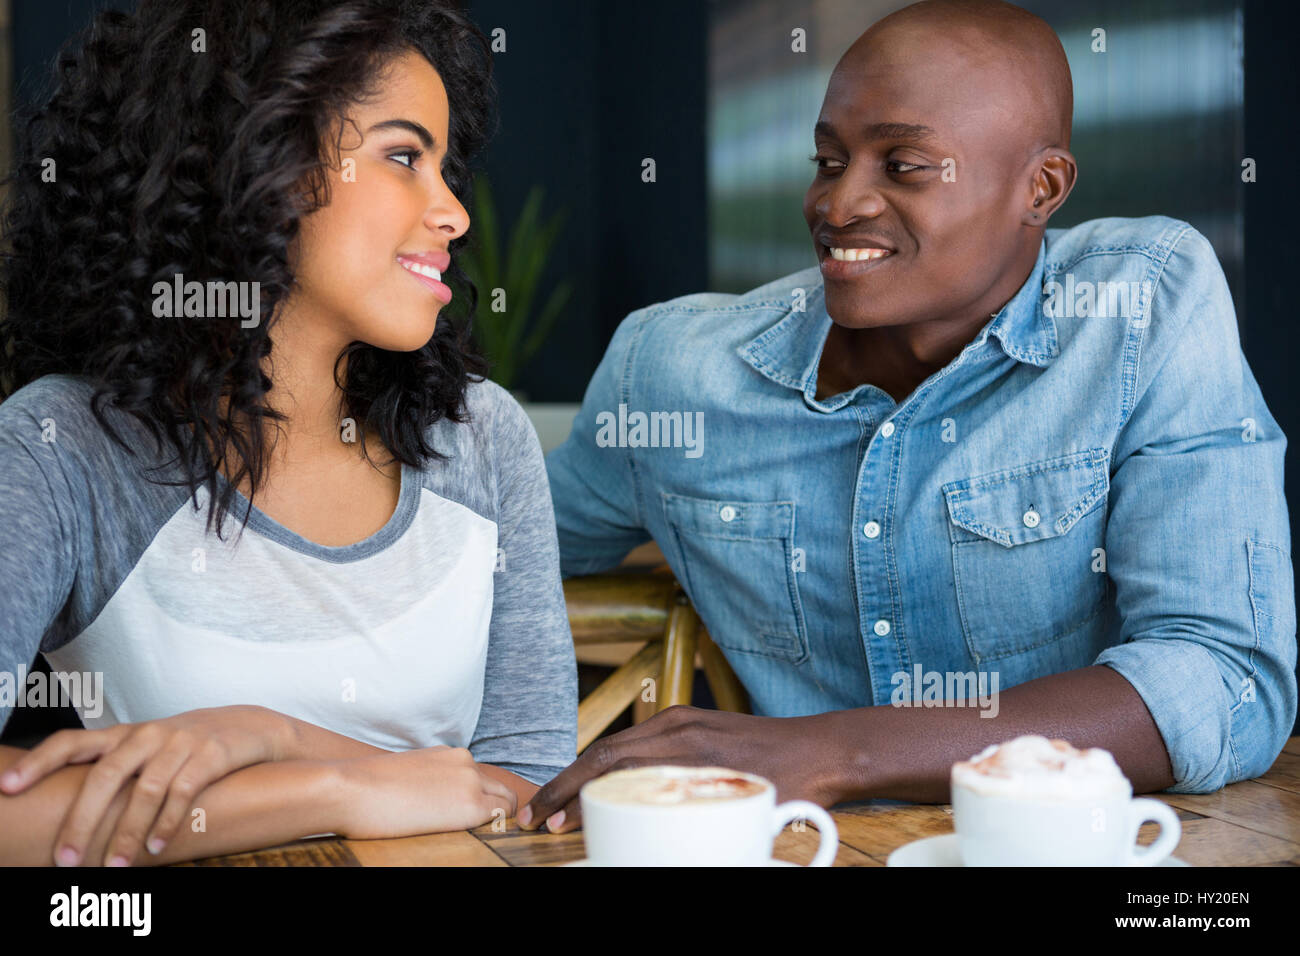 Loving young couple looking at each other at table in coffee shop - Stock Image